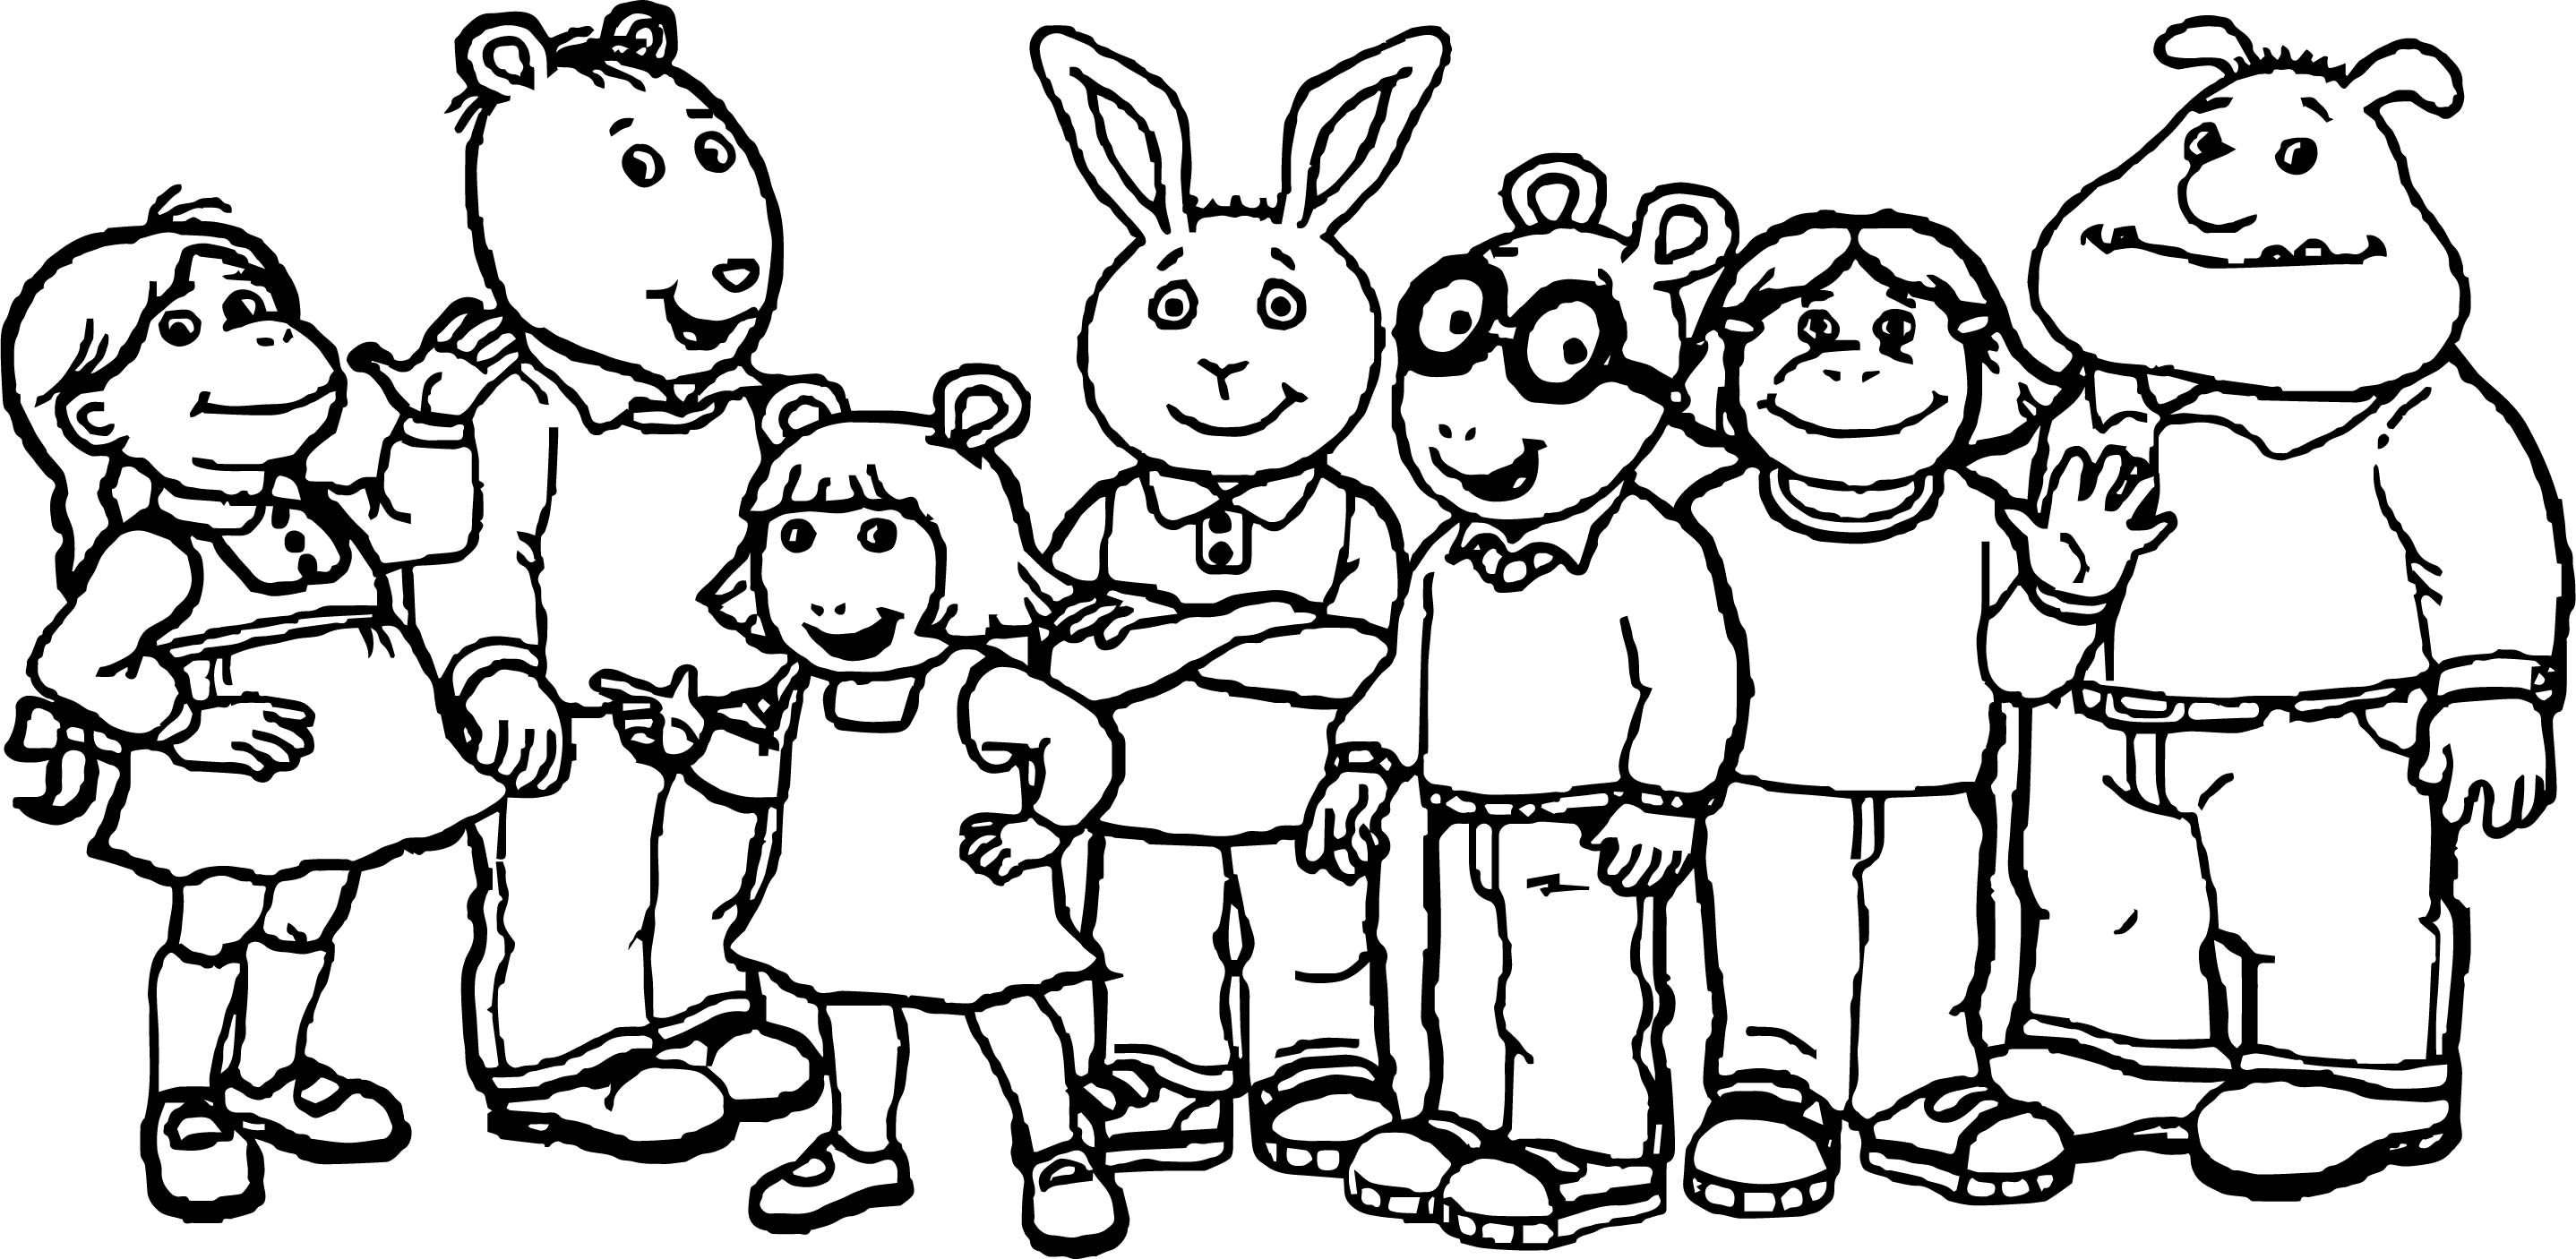 2876x1406 Pbs Kids Coloring Pages With Wallpaper Hd Resolution Pbs Coloring